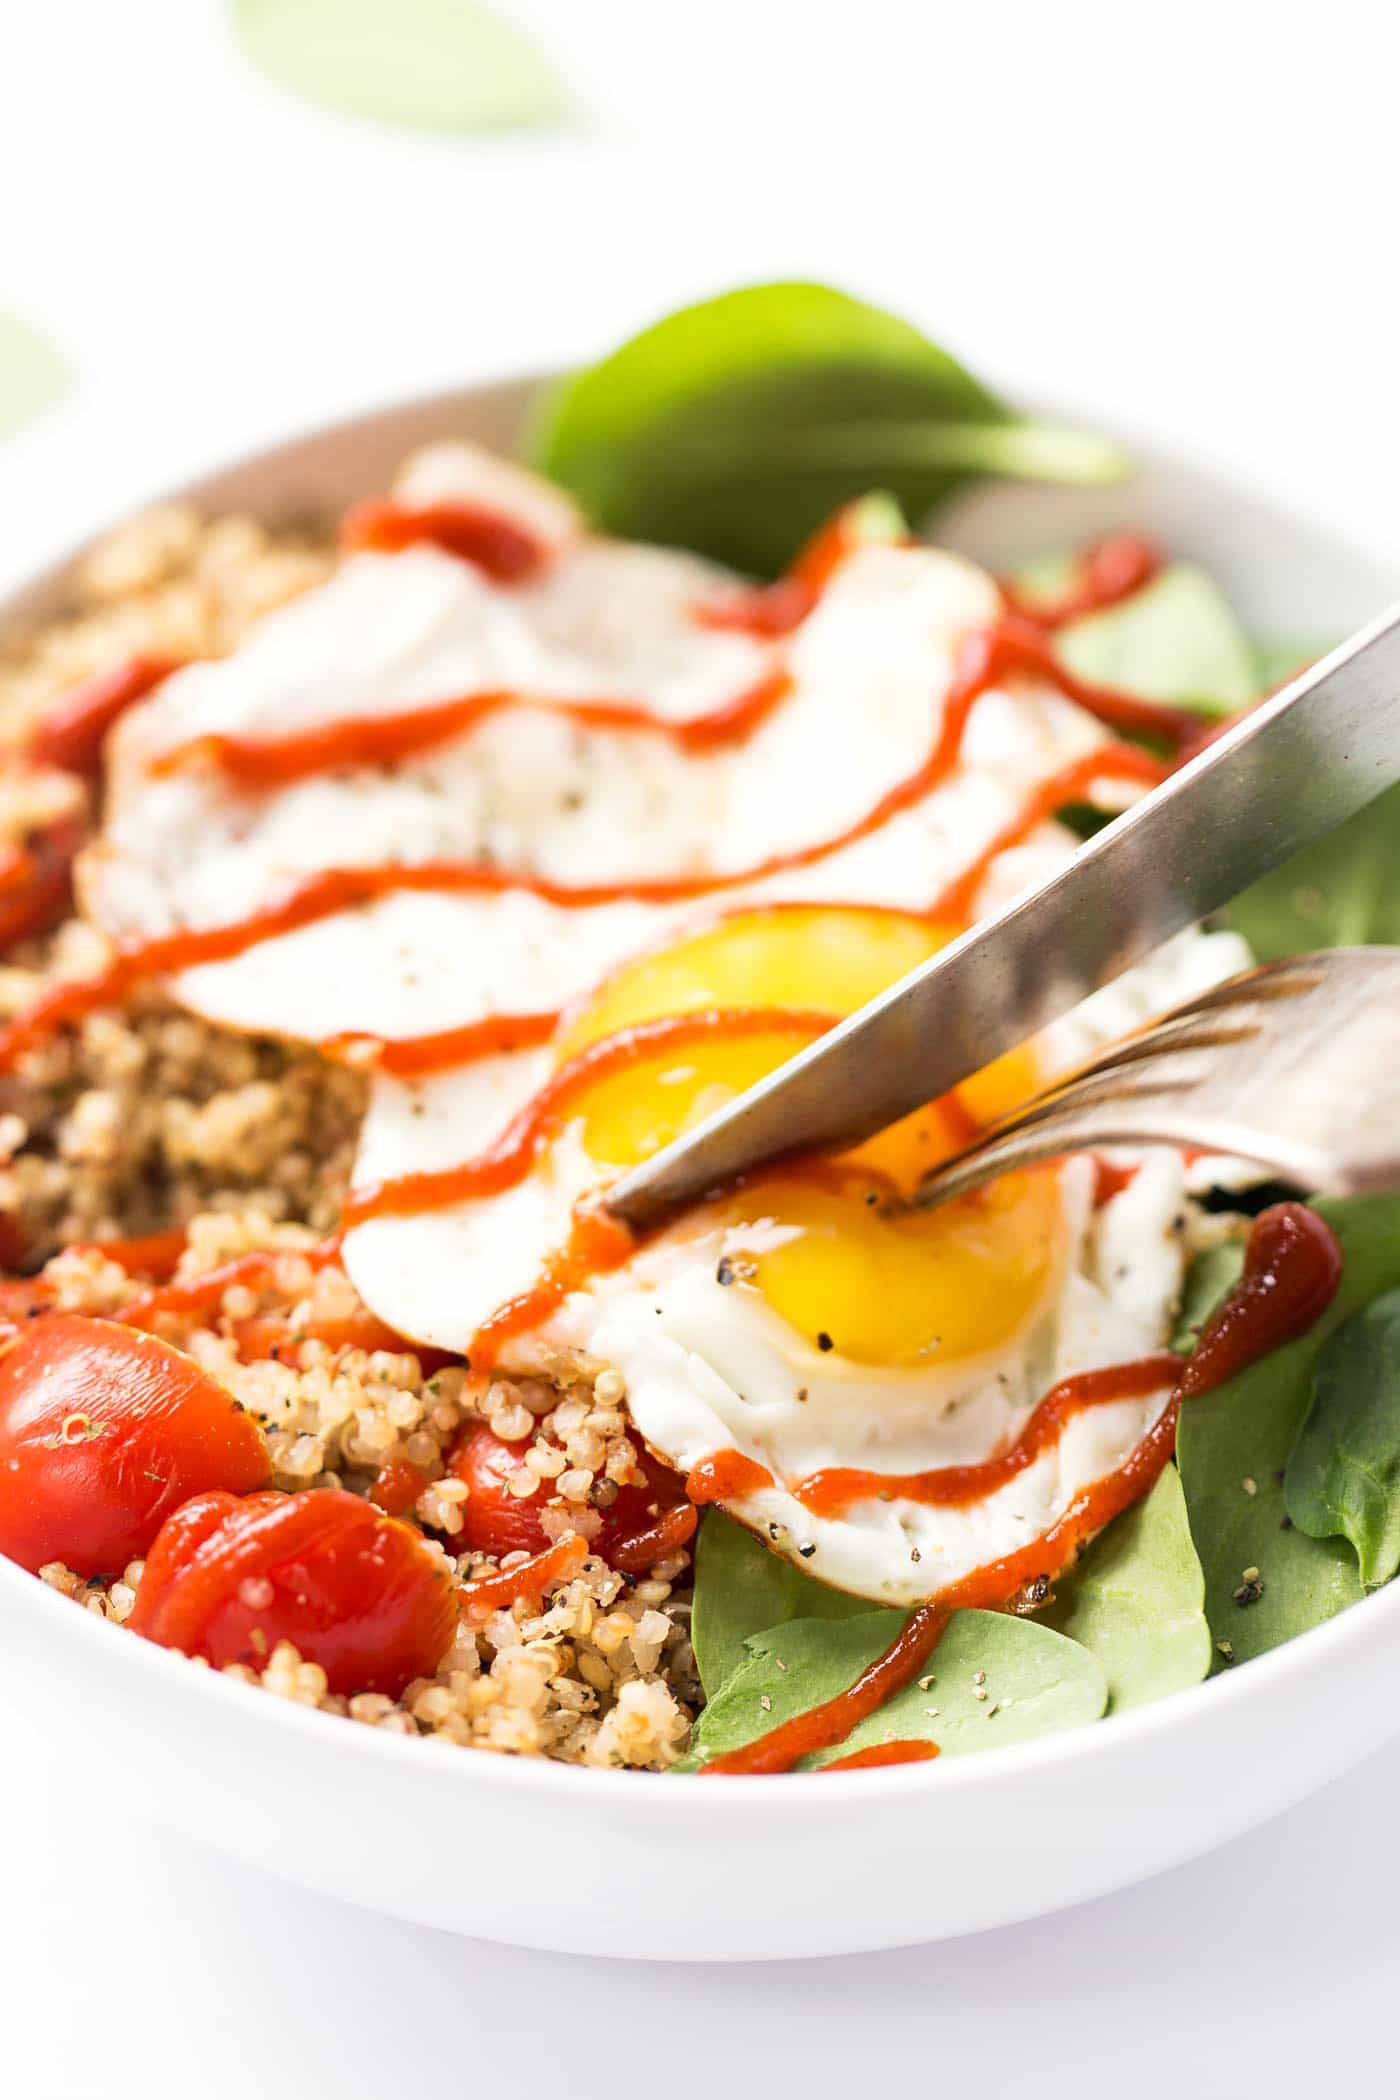 These SAVORY Quinoa Breakfast Bowls take just 5 minutes to make and are packed with healthy ingredients srcset=